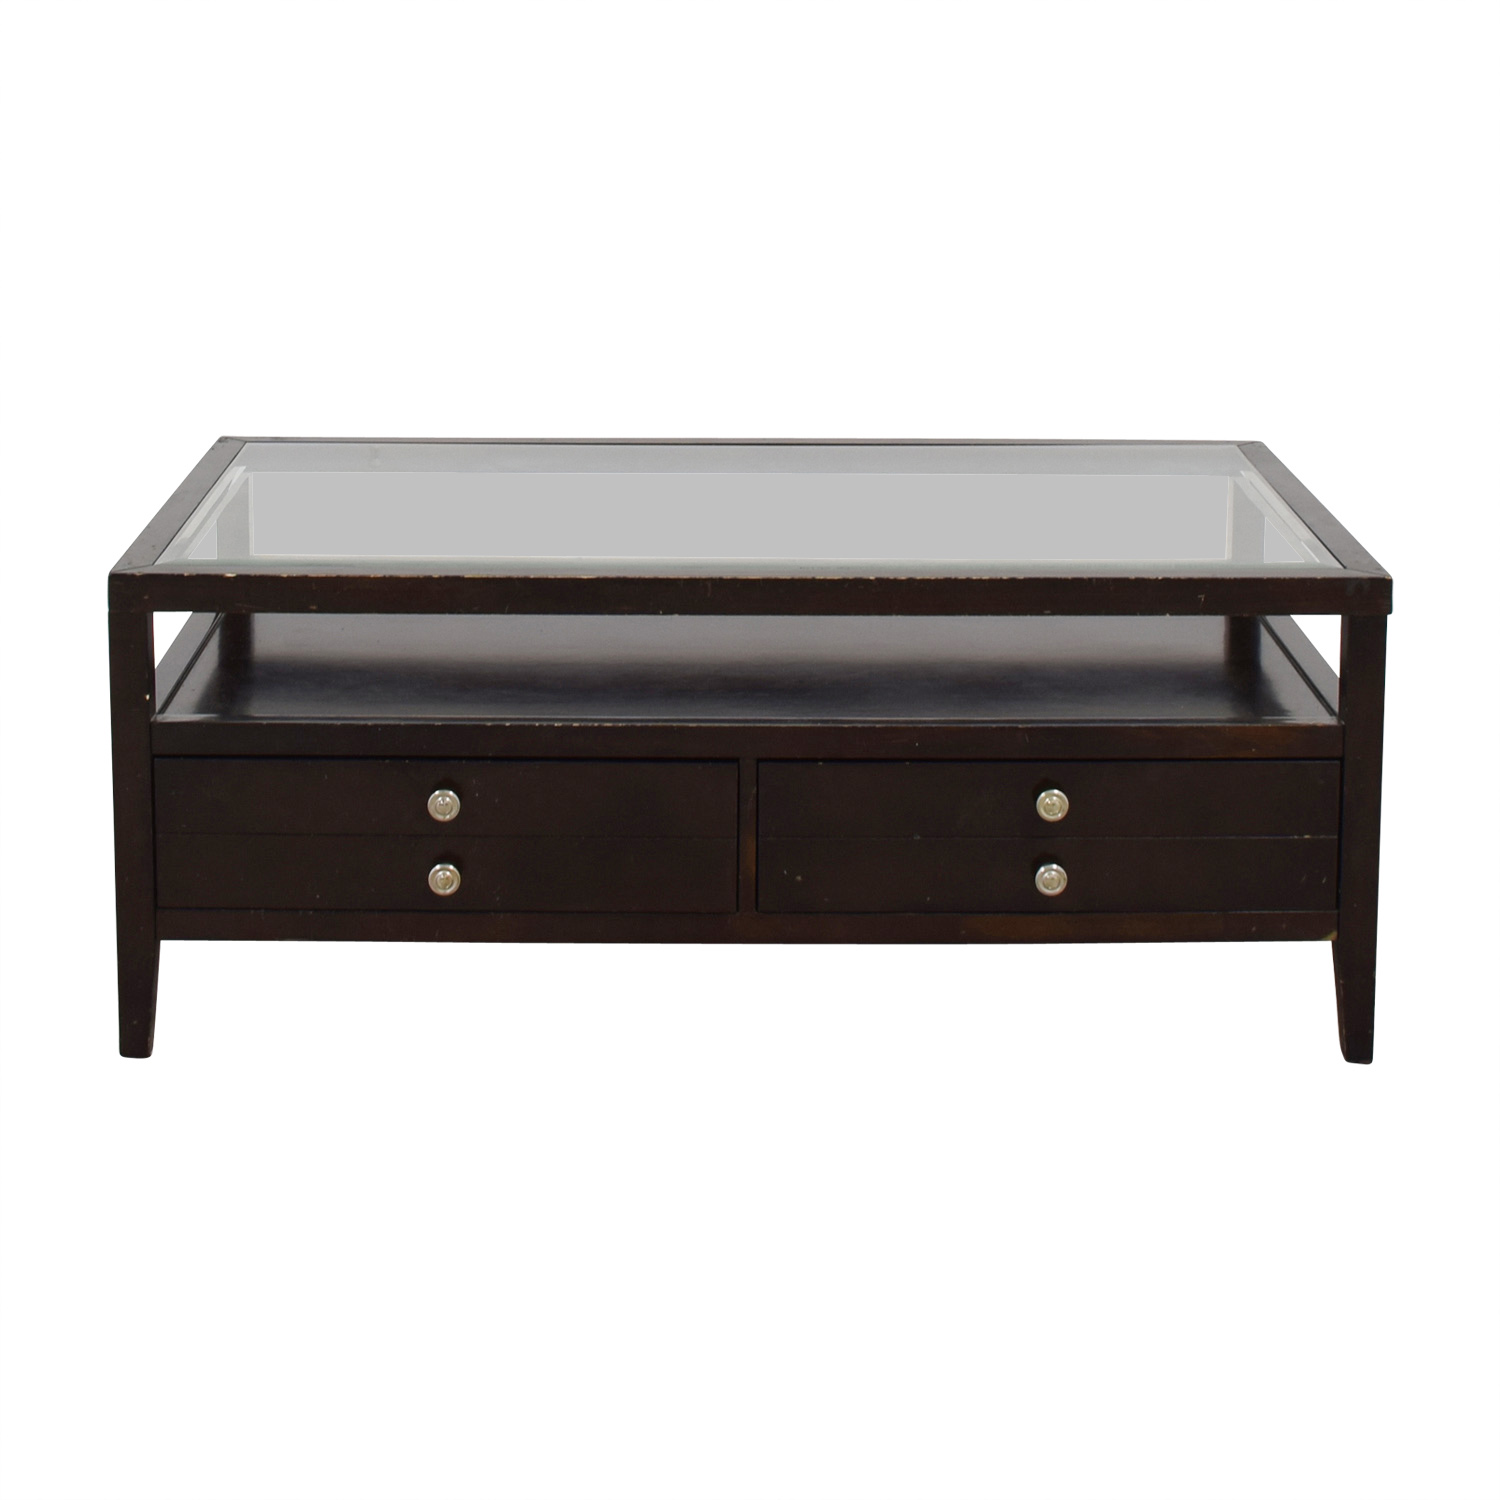 61 Off Black Wood And Glass Coffee Table Tables